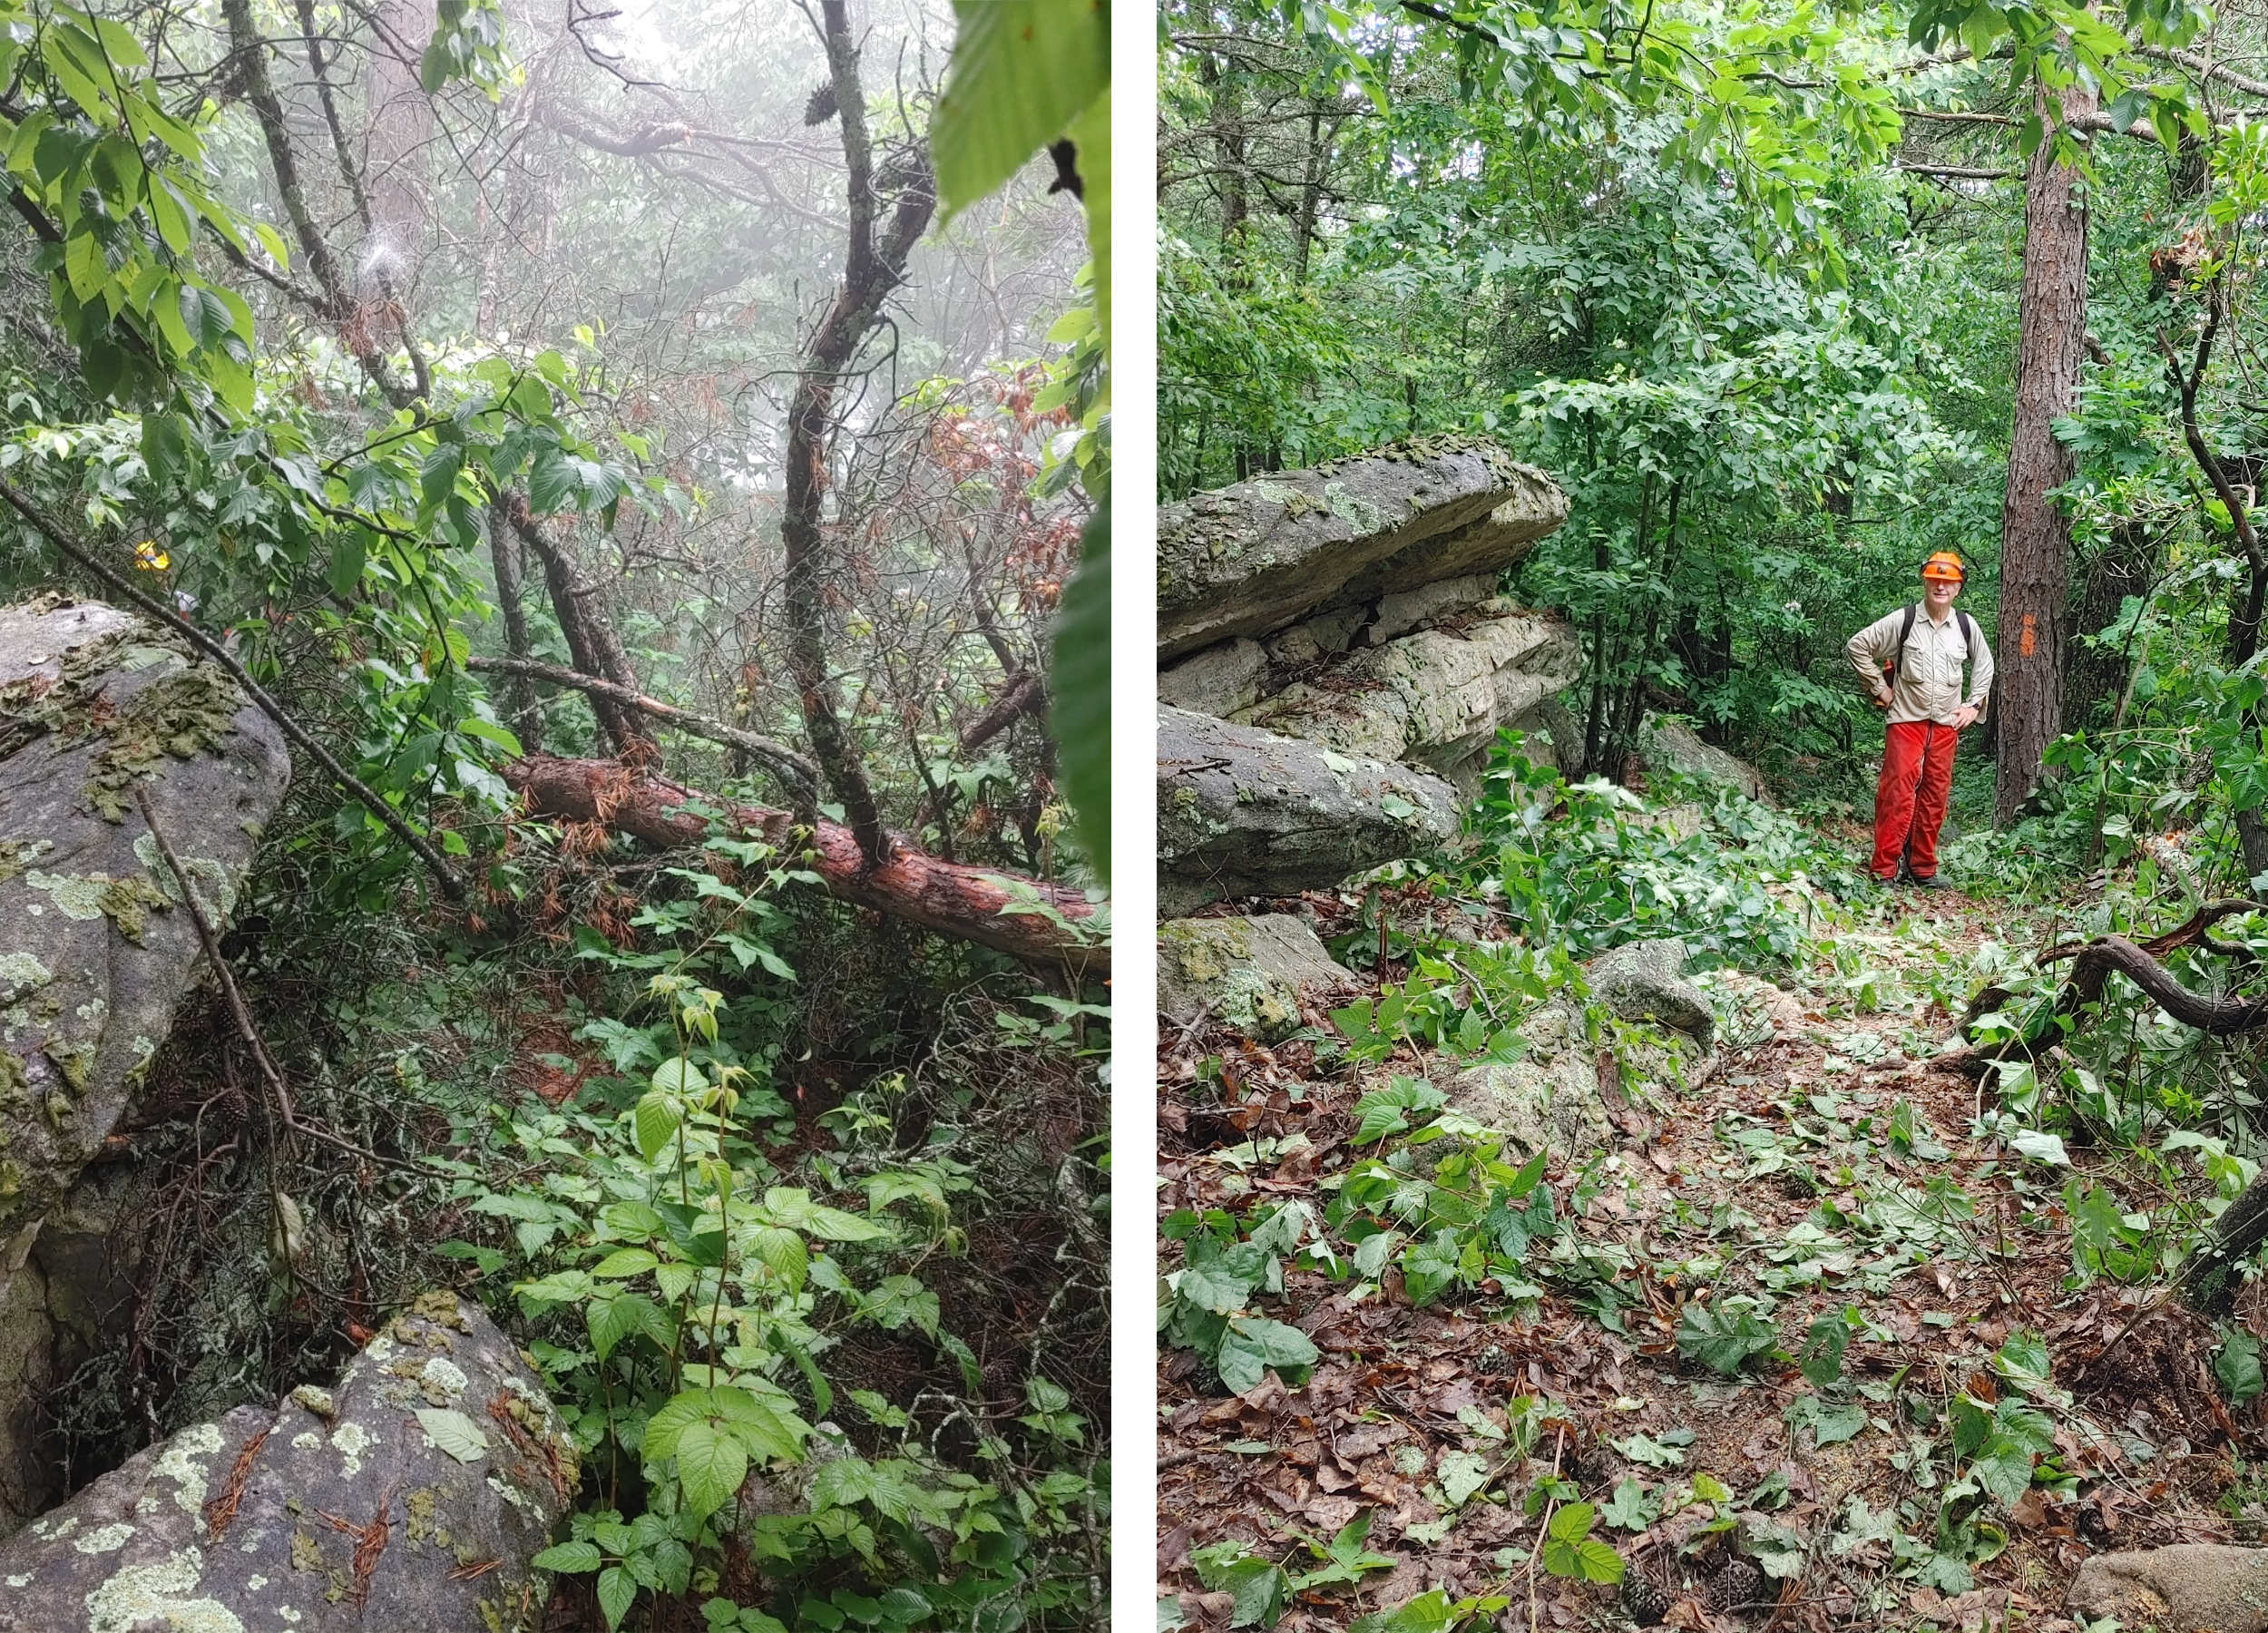 The large tree on Kerns Mountain, before and after Anstr Davidson cleared it